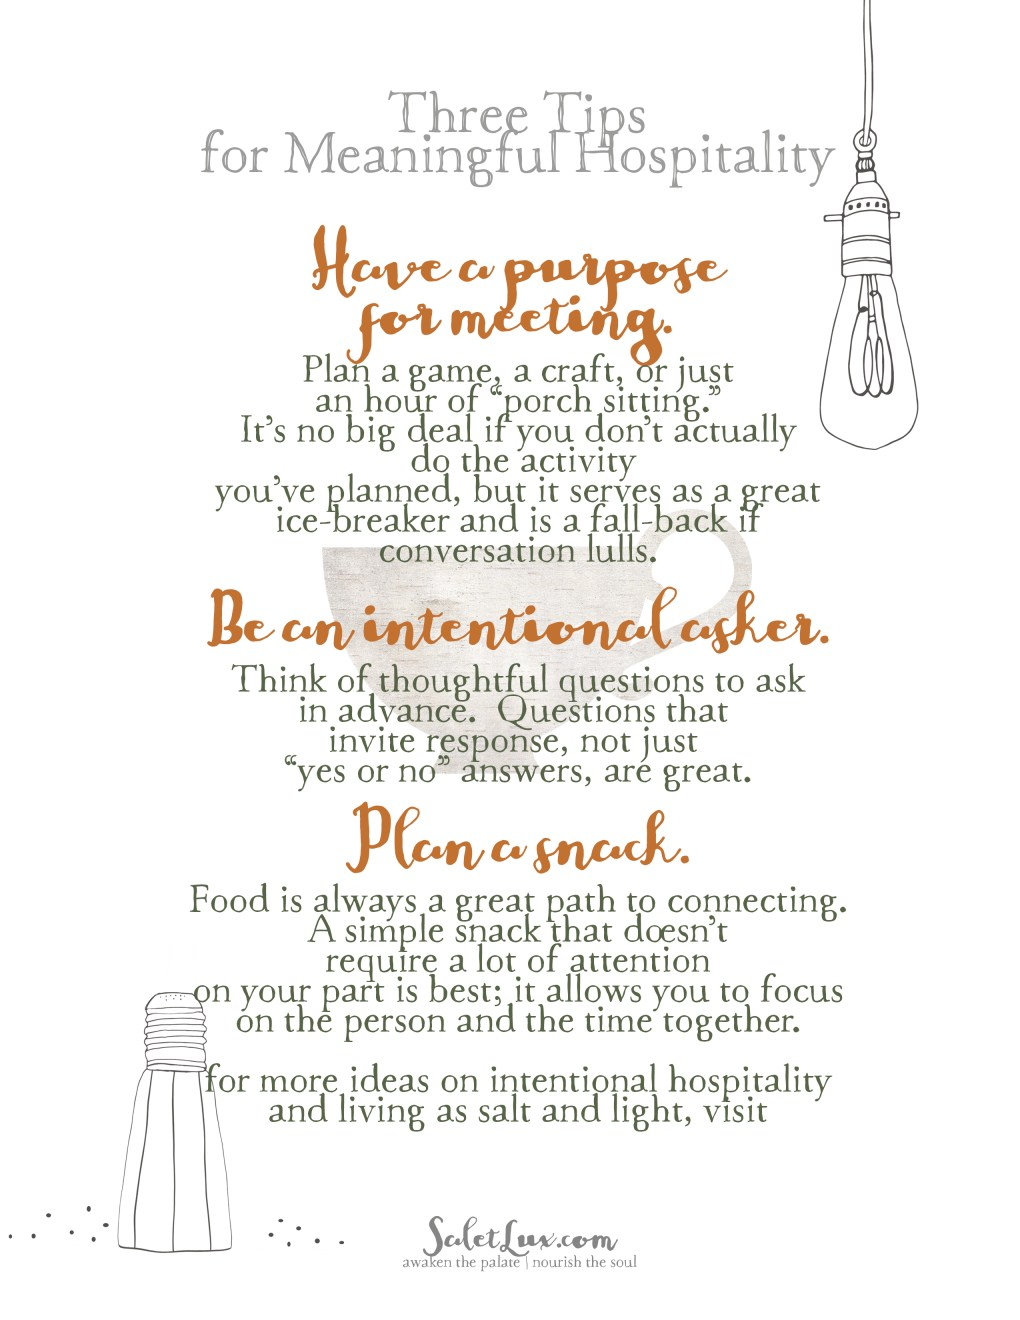 tips for meaningful hospitality - free printables